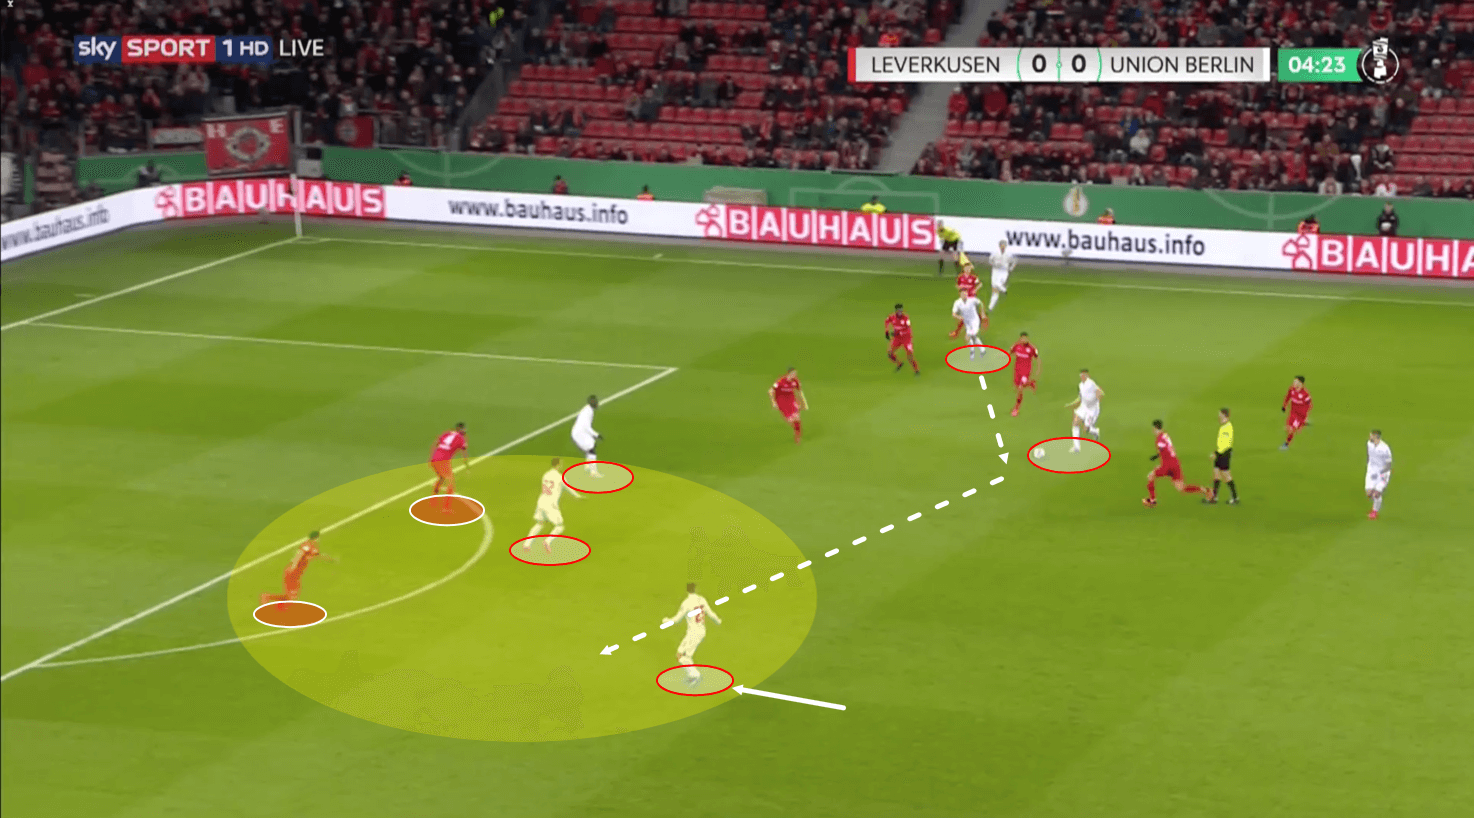 DFB Pokal 2019/20: Bayer Leverkusen vs Union Berlin - tactical analysis tactics